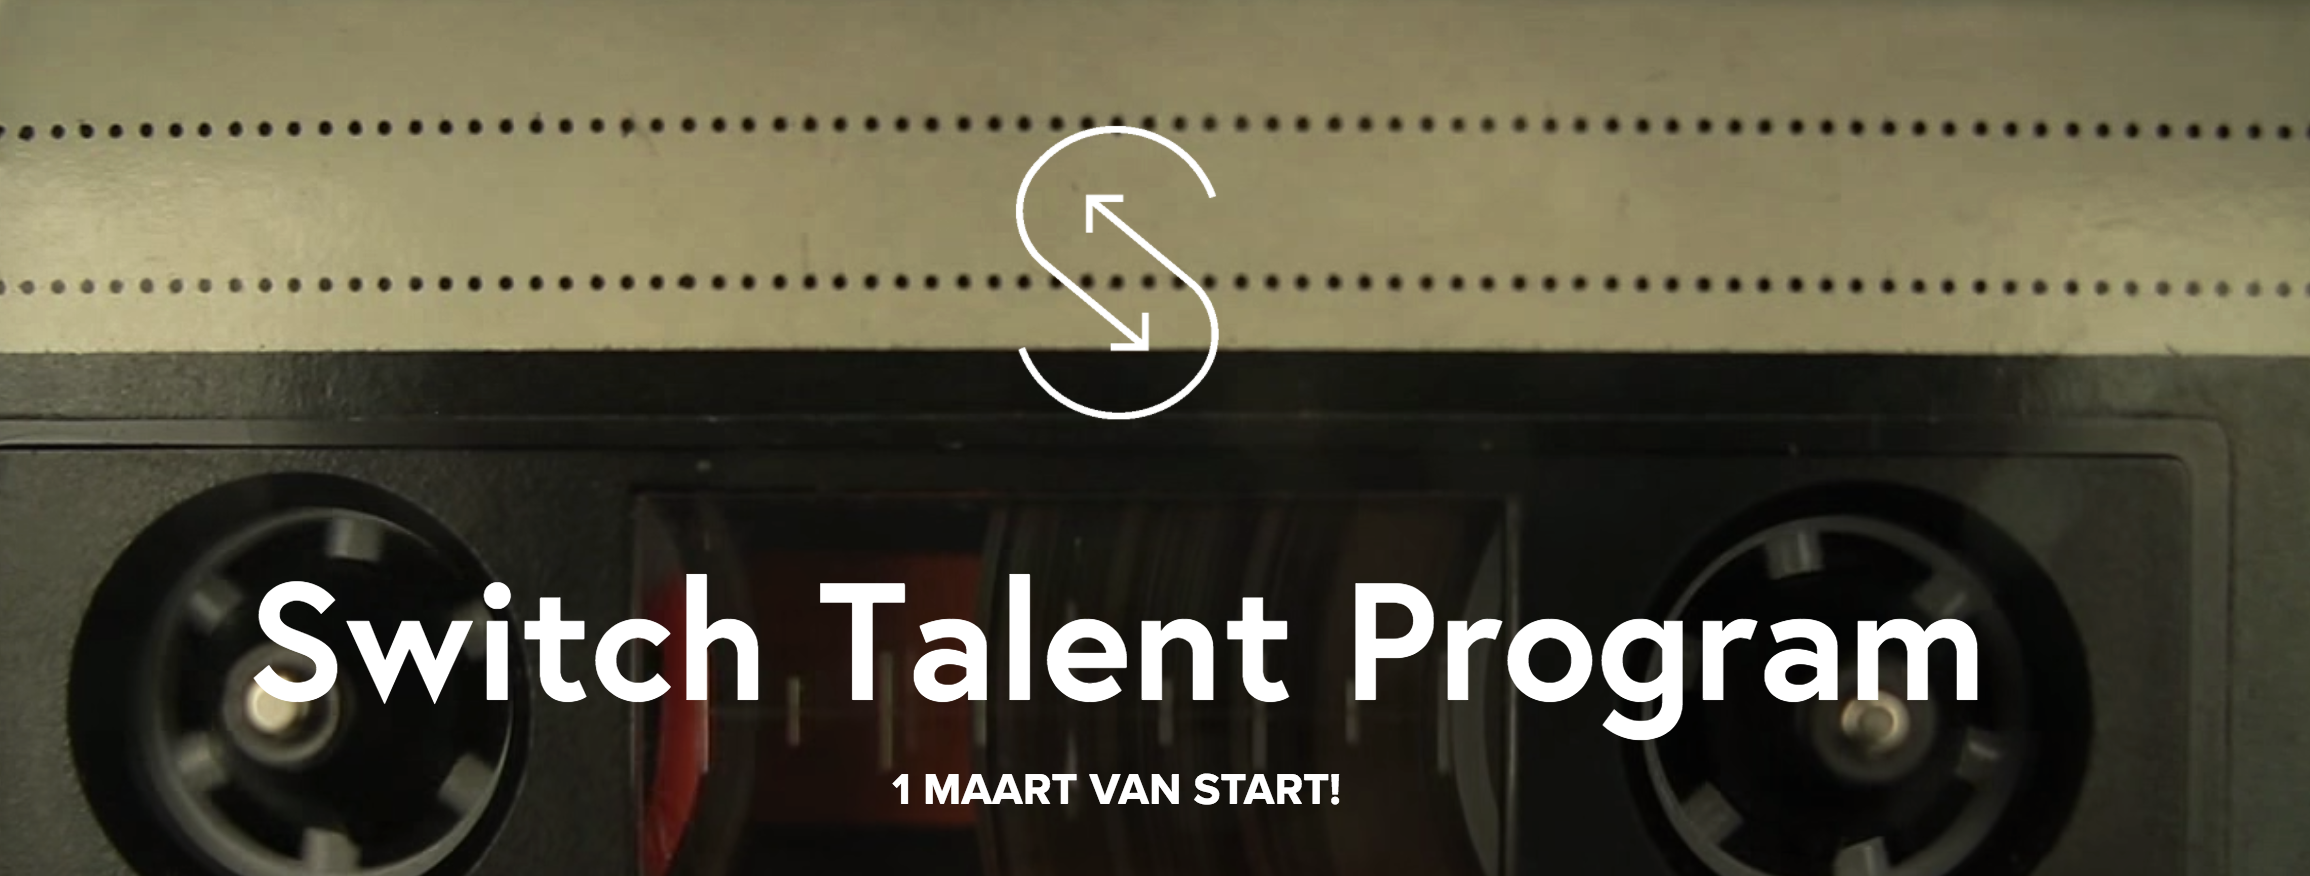 Switch Talent Program voor jonge reclamecreatieven van start